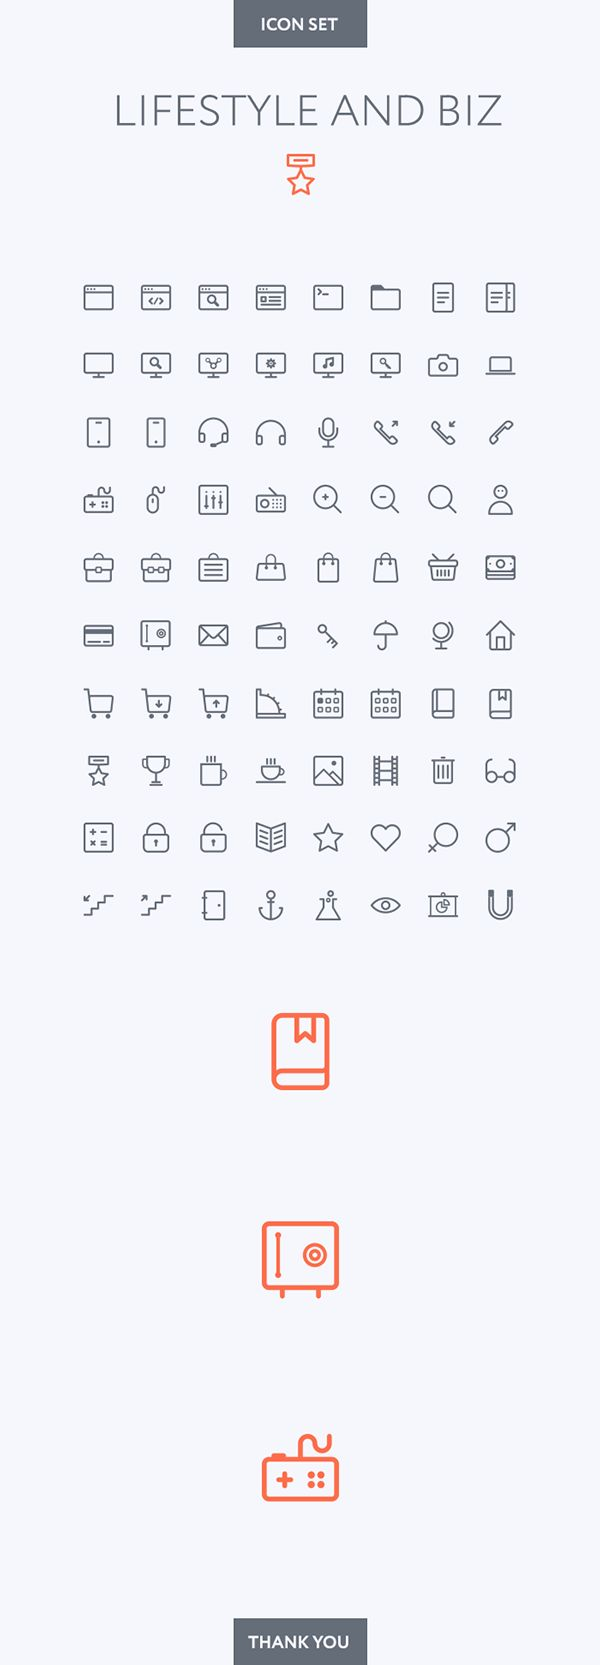 Lifestyle and Business icon set on Behance